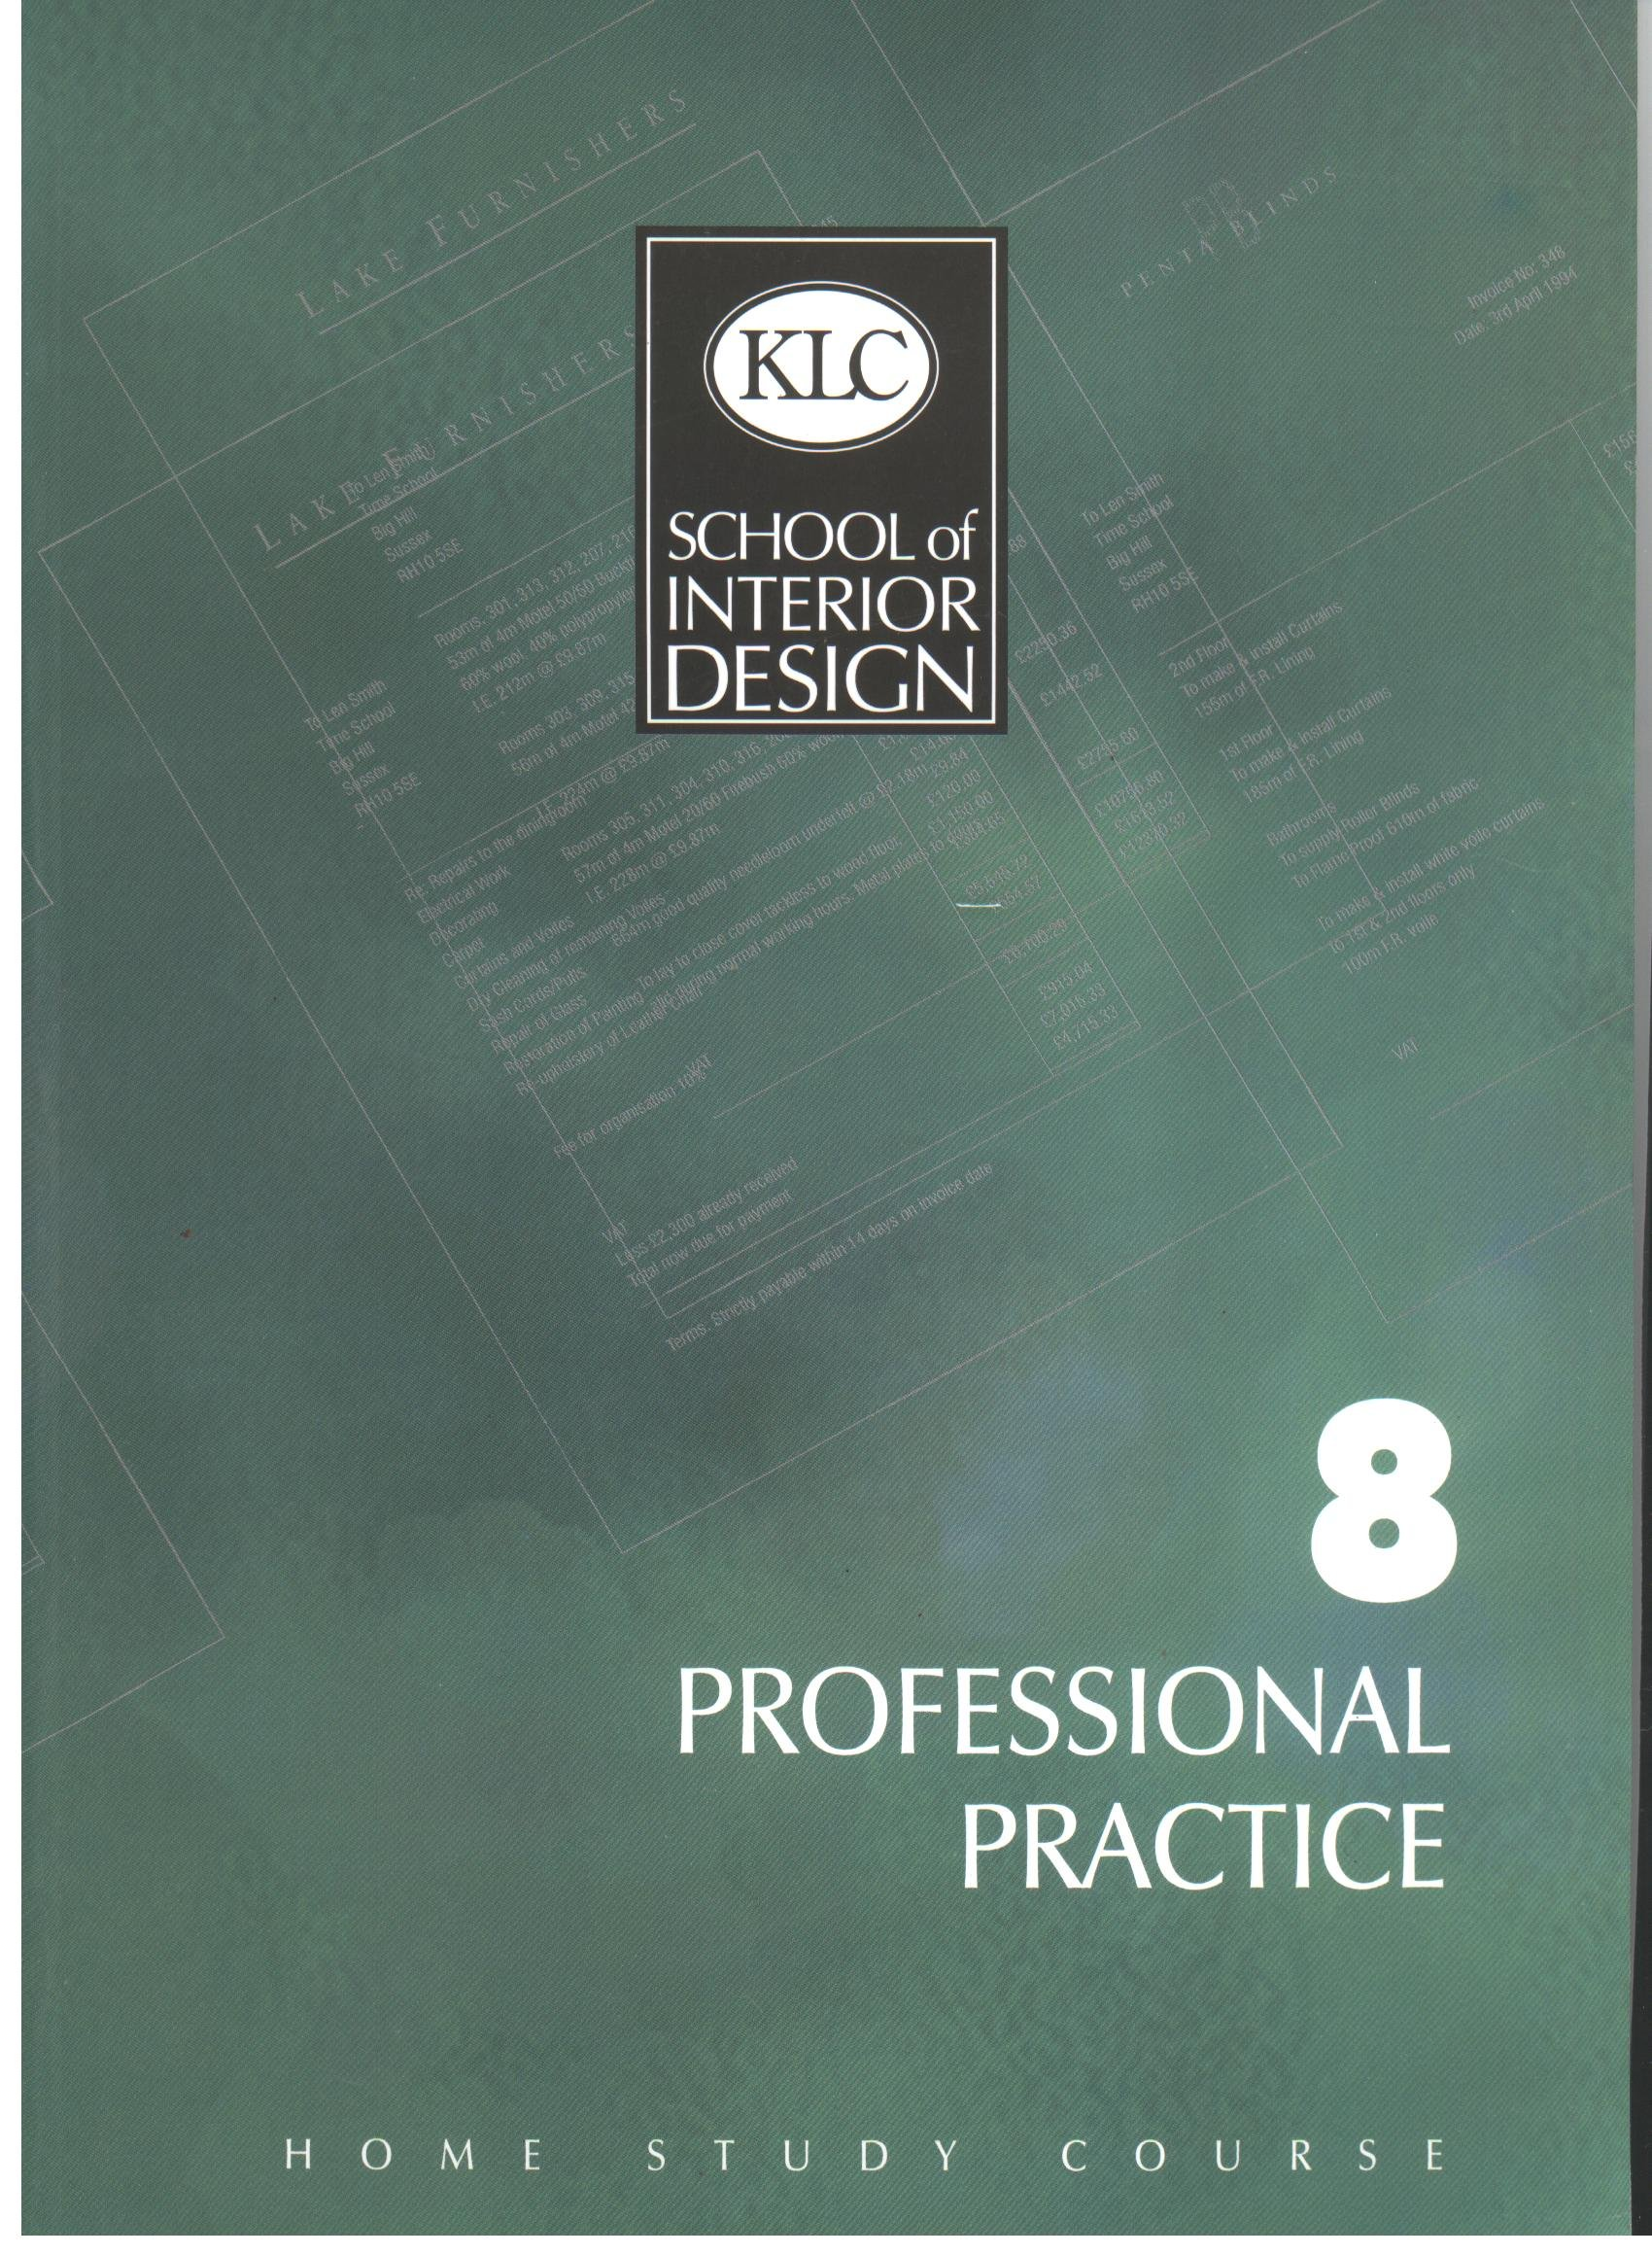 professional practice home study course klc school of interior design home study course amazon co uk jenny gibbs mary laurie books